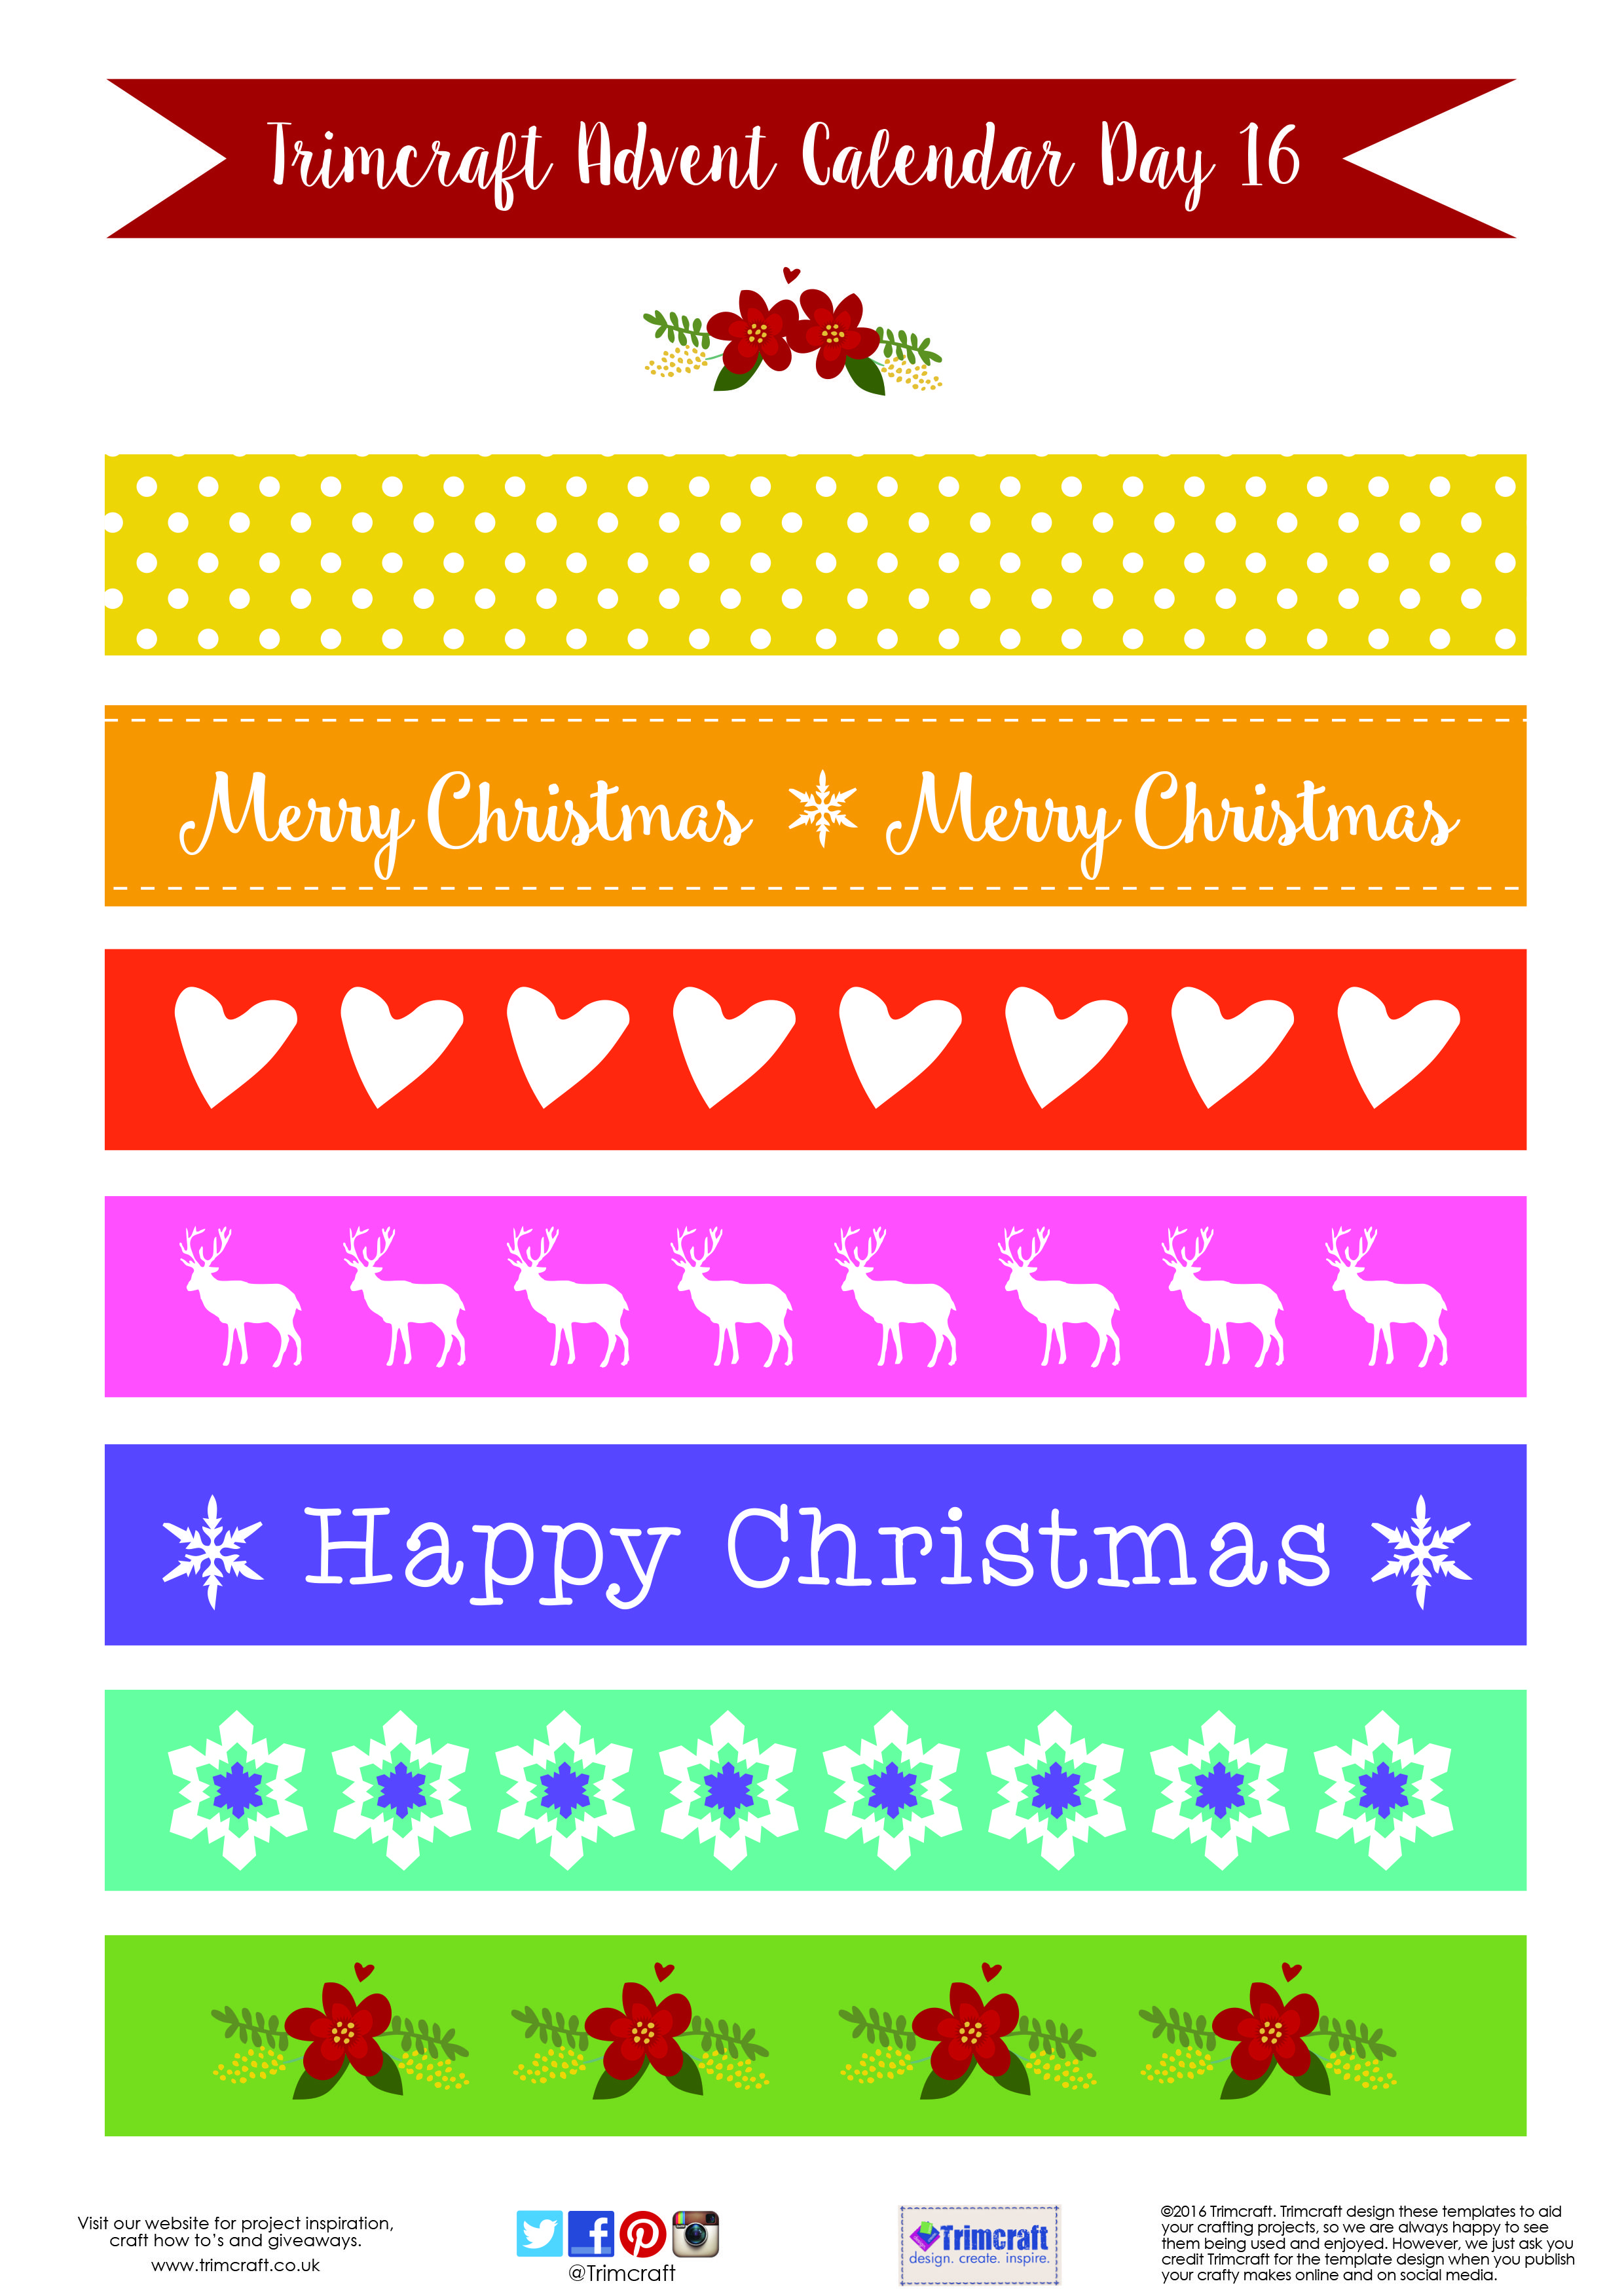 Christmas Paper Chains Uk.Trimcraft Advent Calendar Day 16 Free Printable Paper Chain